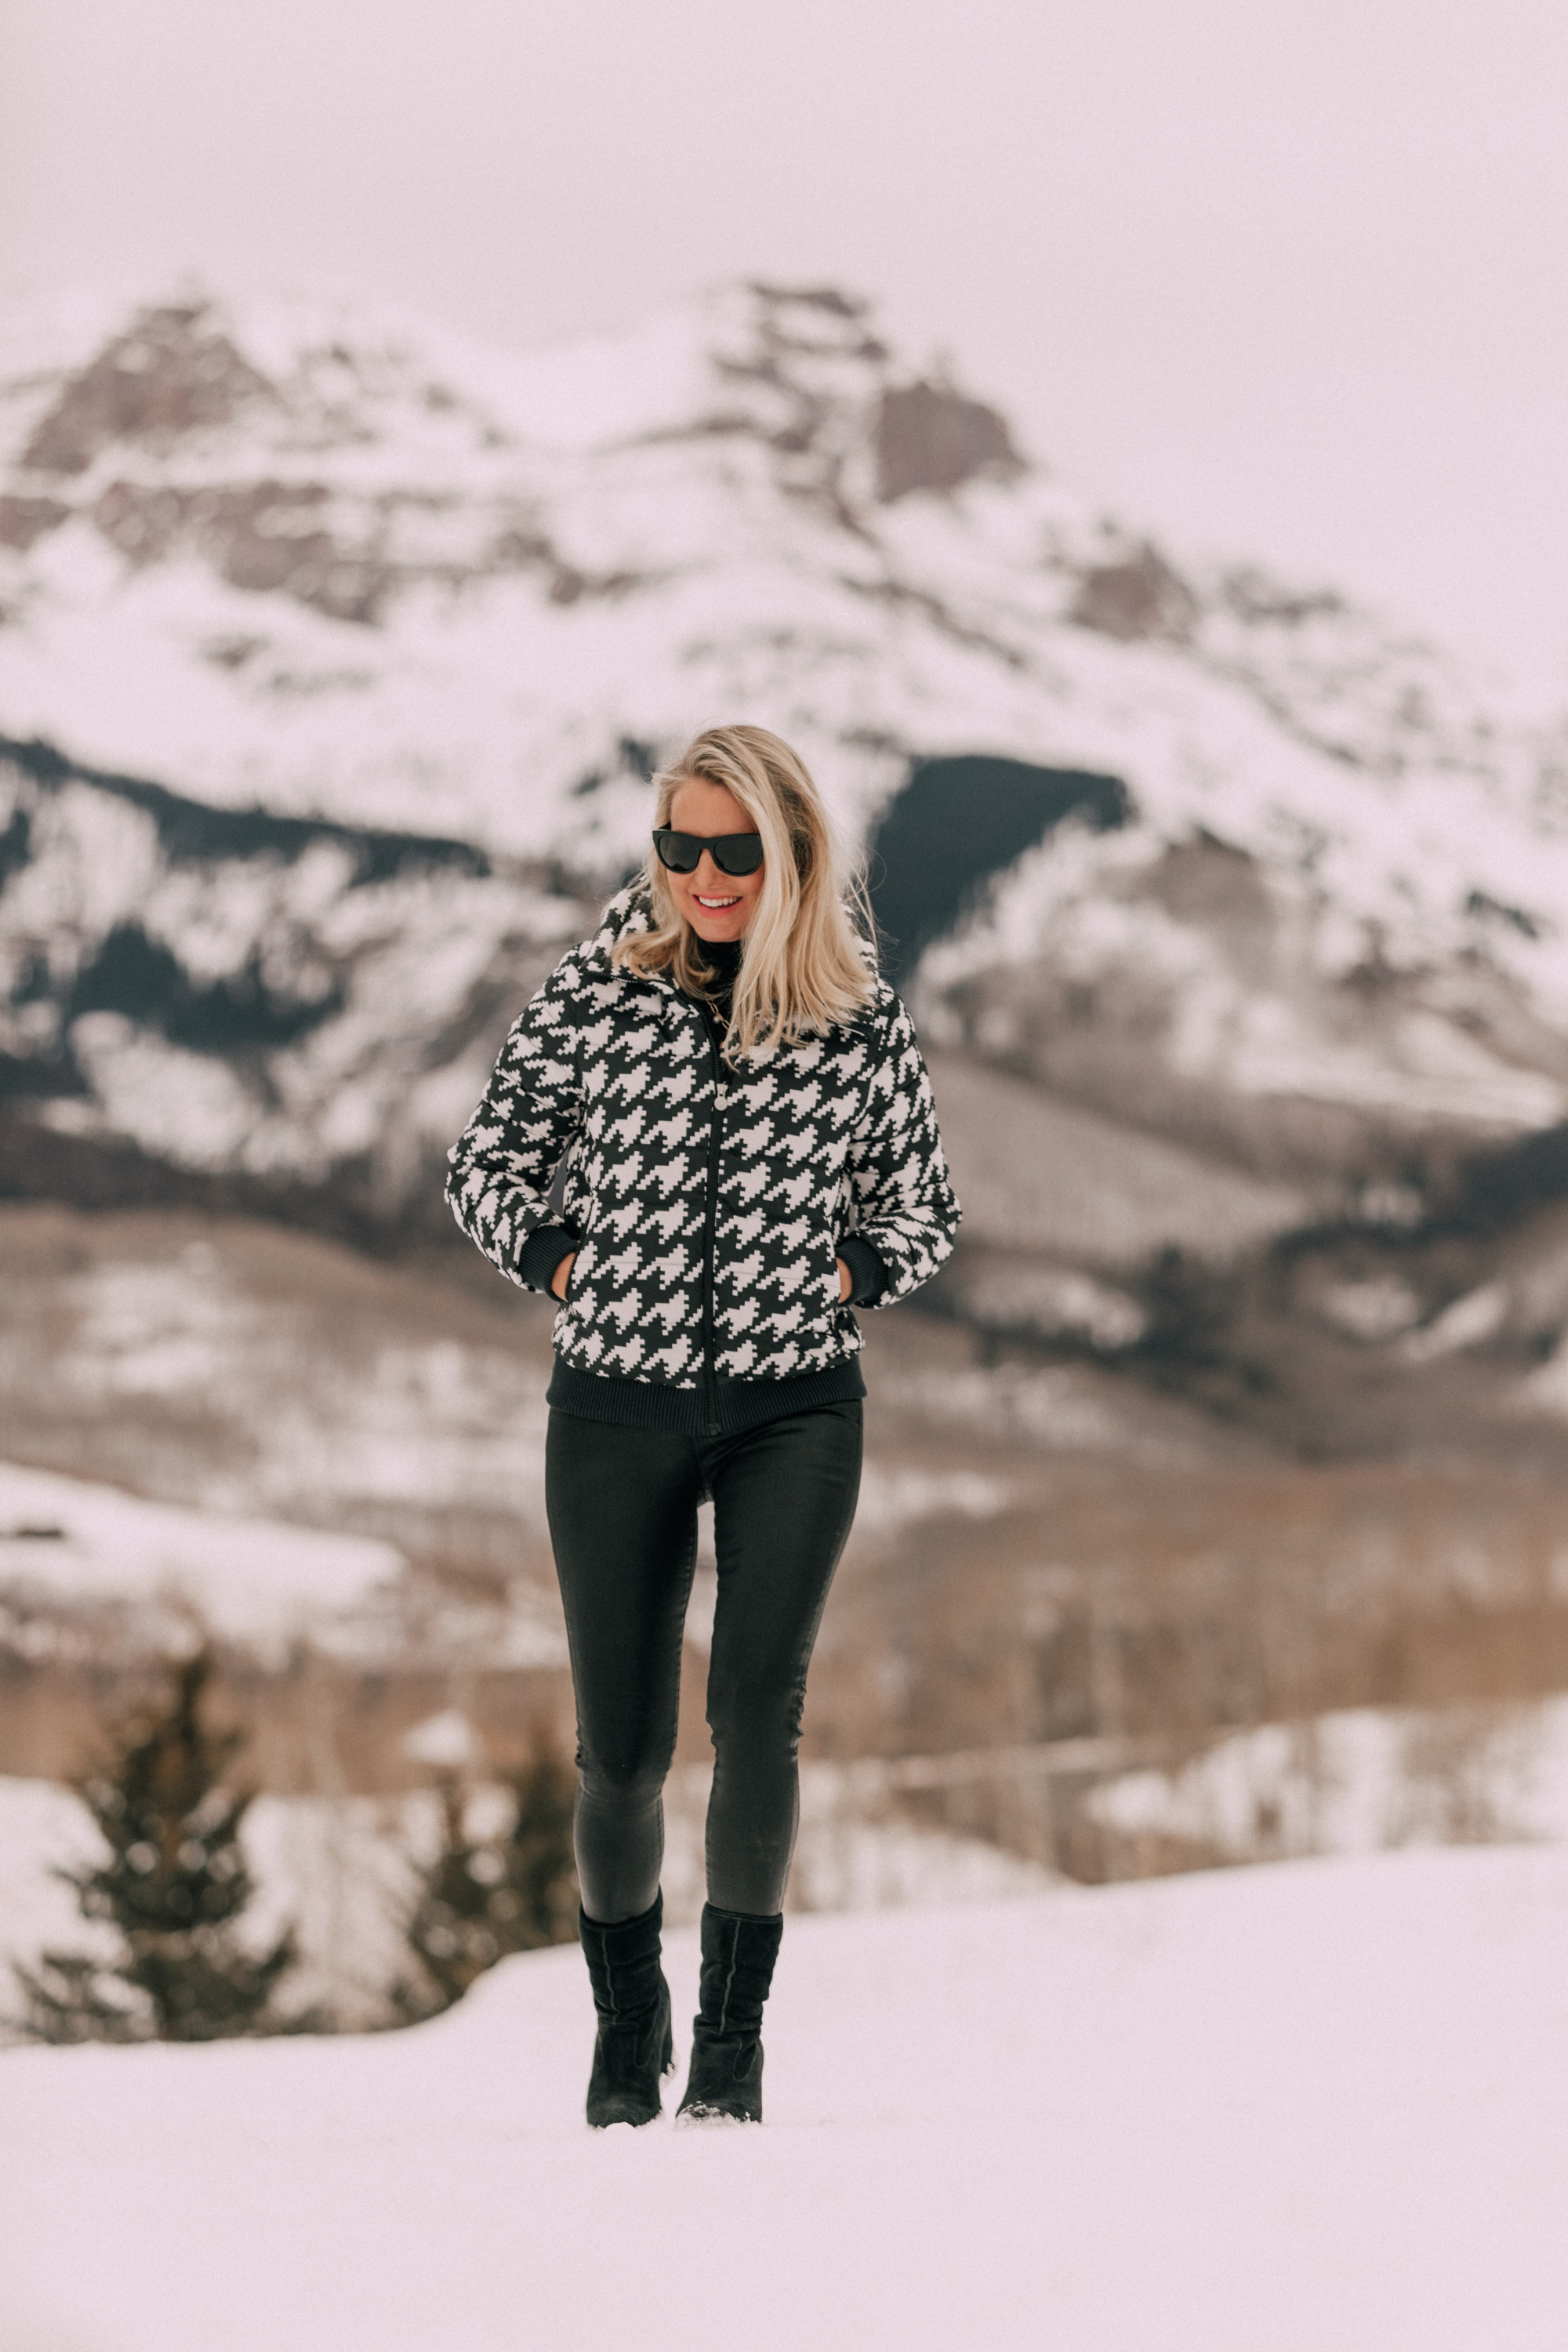 Chic Puffers, Fashion blogger Erin Busbee of BusbeeStyle.com wearing black Rocket leatherette Skinny Jeans by Citizens of Humanity with a black cashmere turtleneck sweater by Aqua, and a houndstooth puffer jacket by Perfect Moment from Shopbop, and Ugg wedge boots in the snow in Telluride, CO